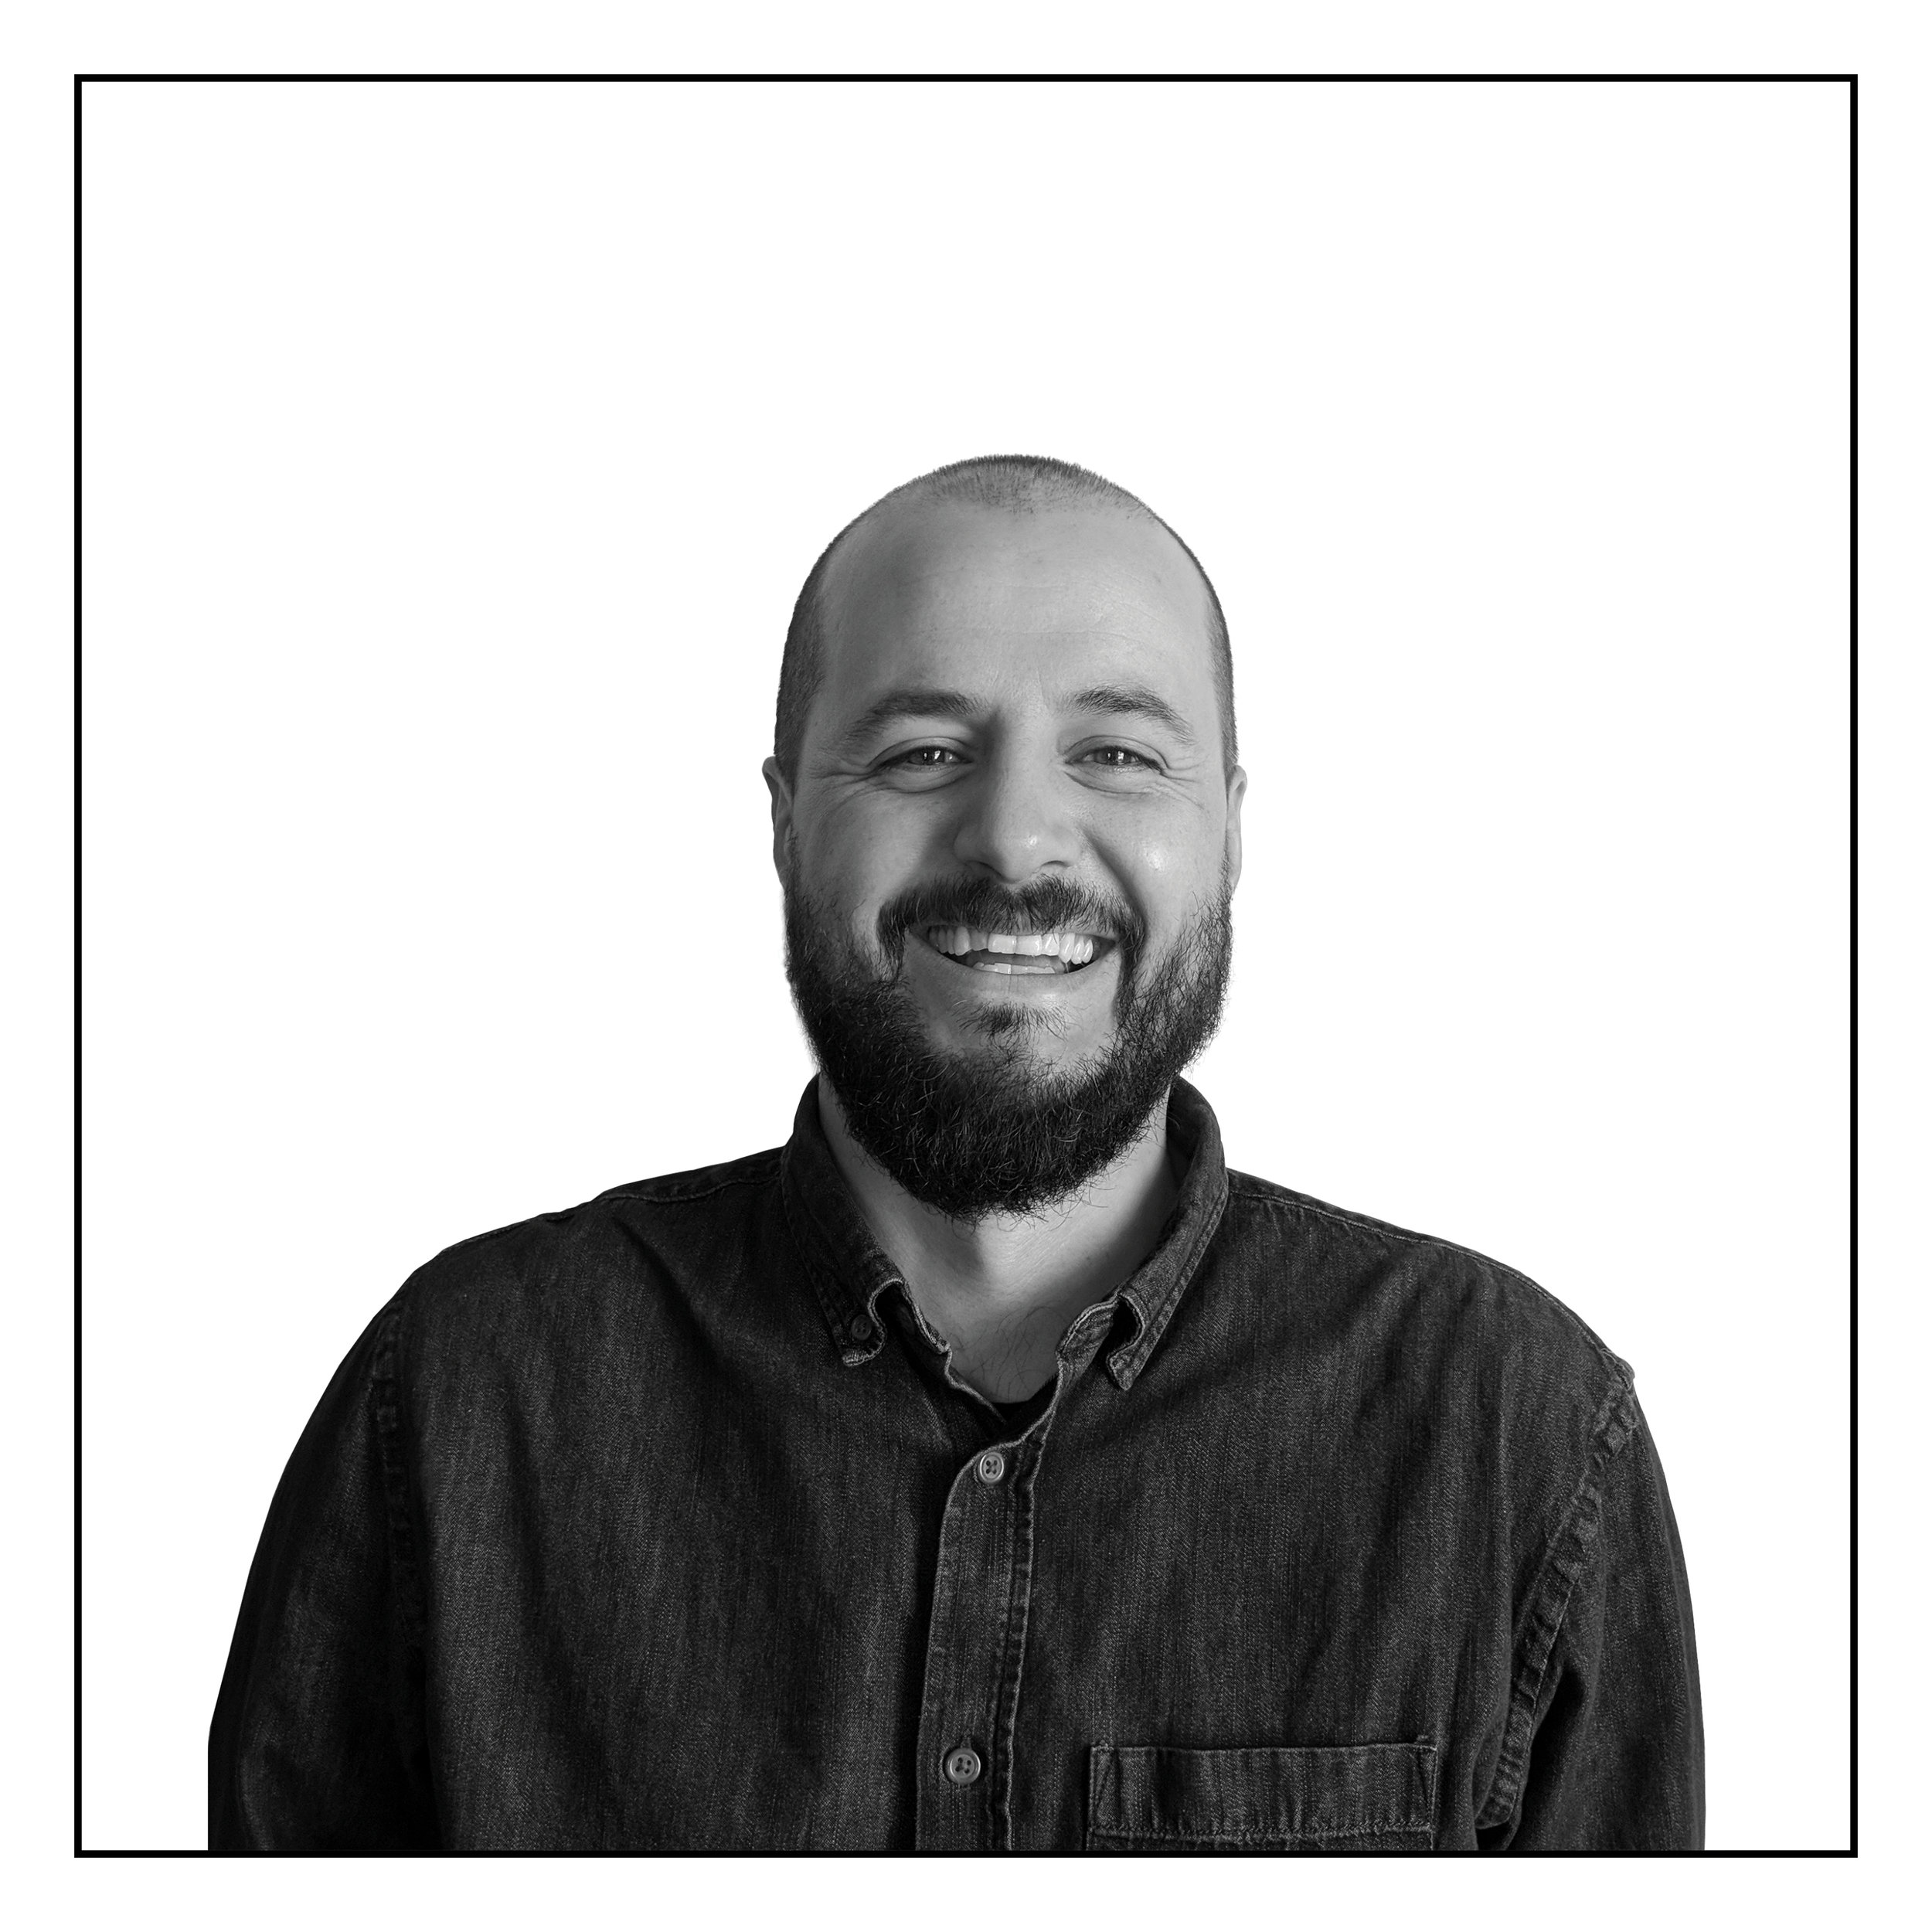 NEW ASSOCIATE - D'Arcy Jones Architects (formerly known as D'Arcy Jones Architecture) welcomes Jesse Ratcliffe as an Associate. Jesse joined DJA in 2015.